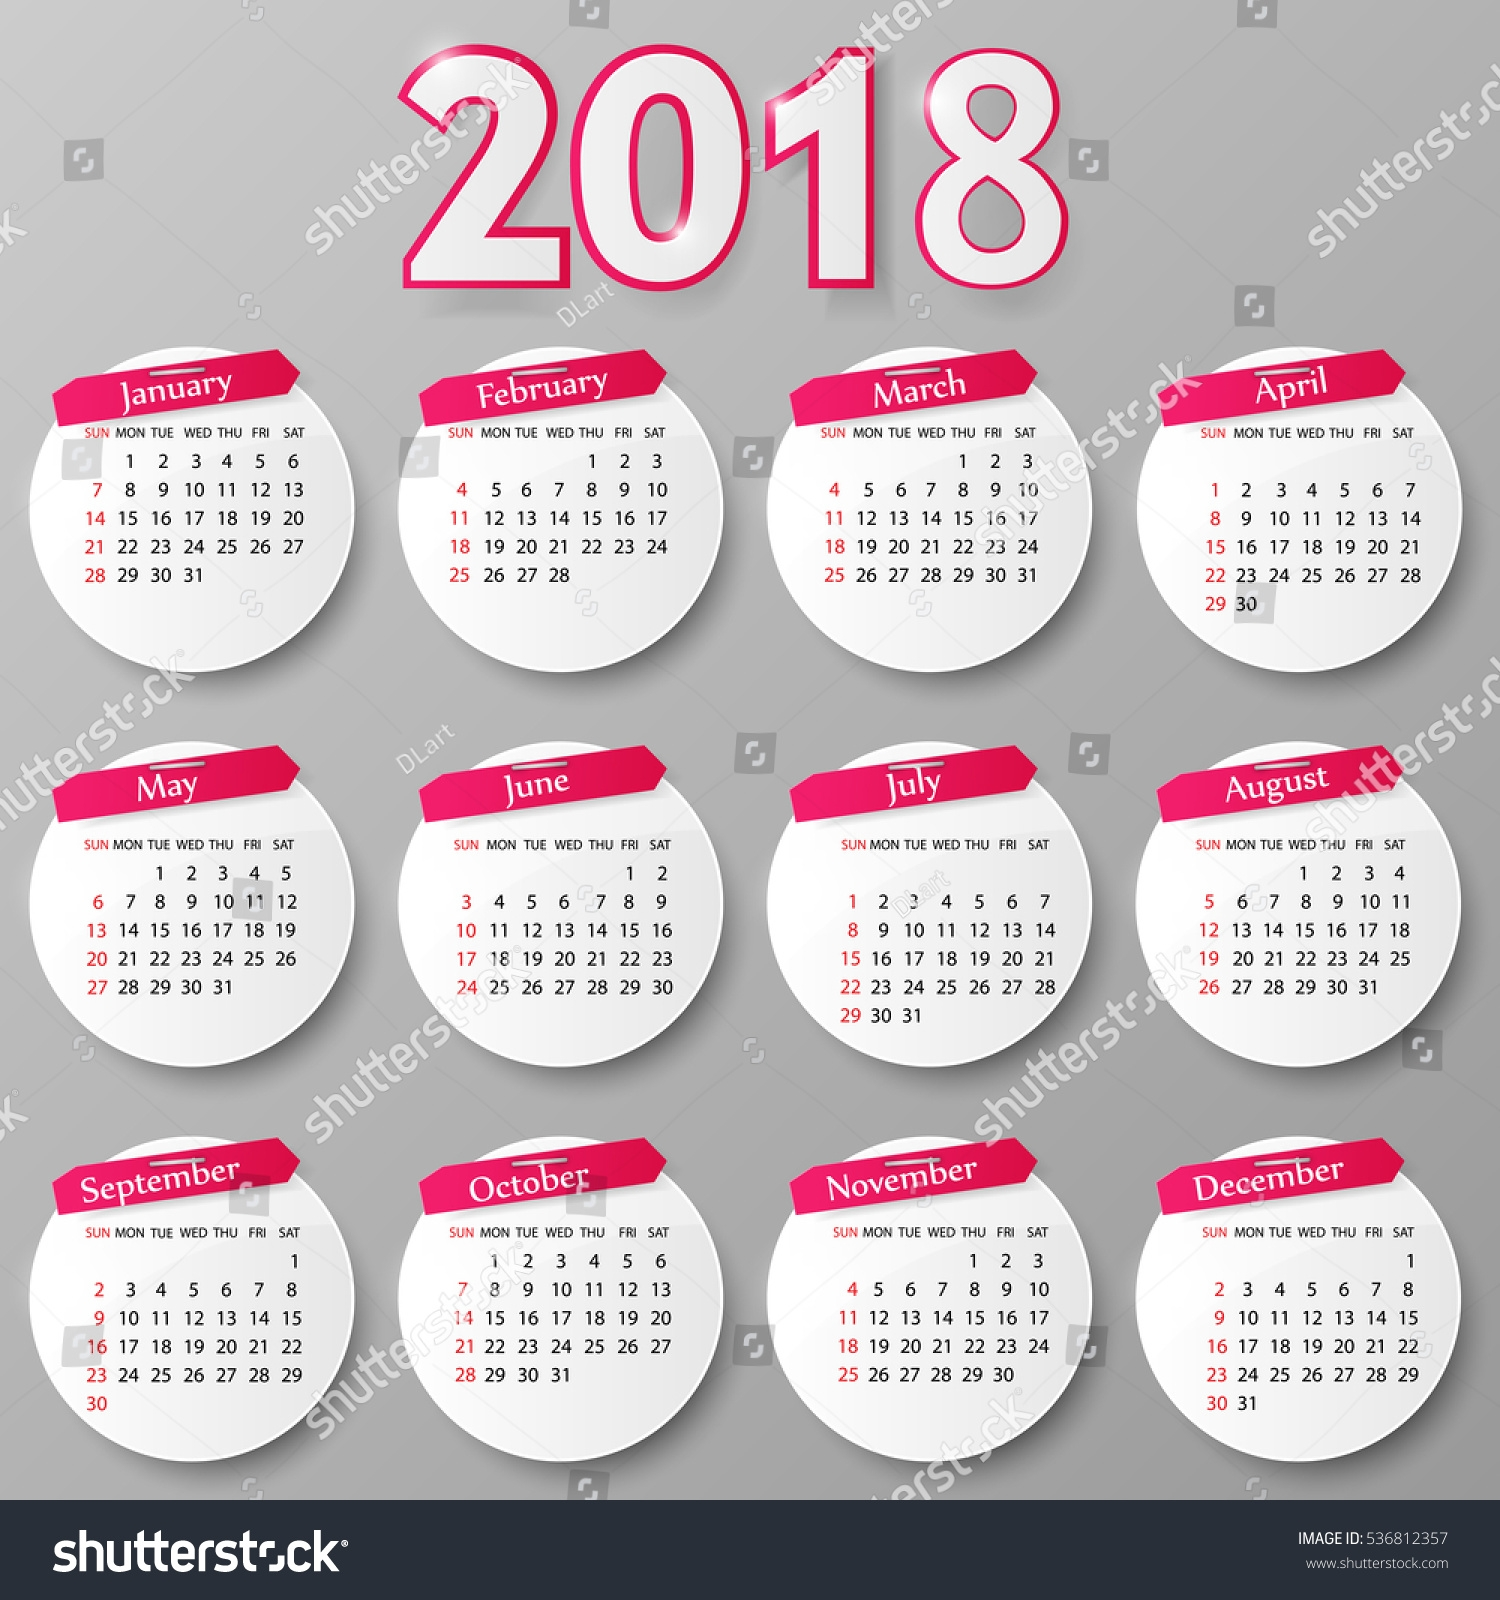 2018 year calendar design vector illustration stock vector 2018 Calendar 2018 Design erdferdf